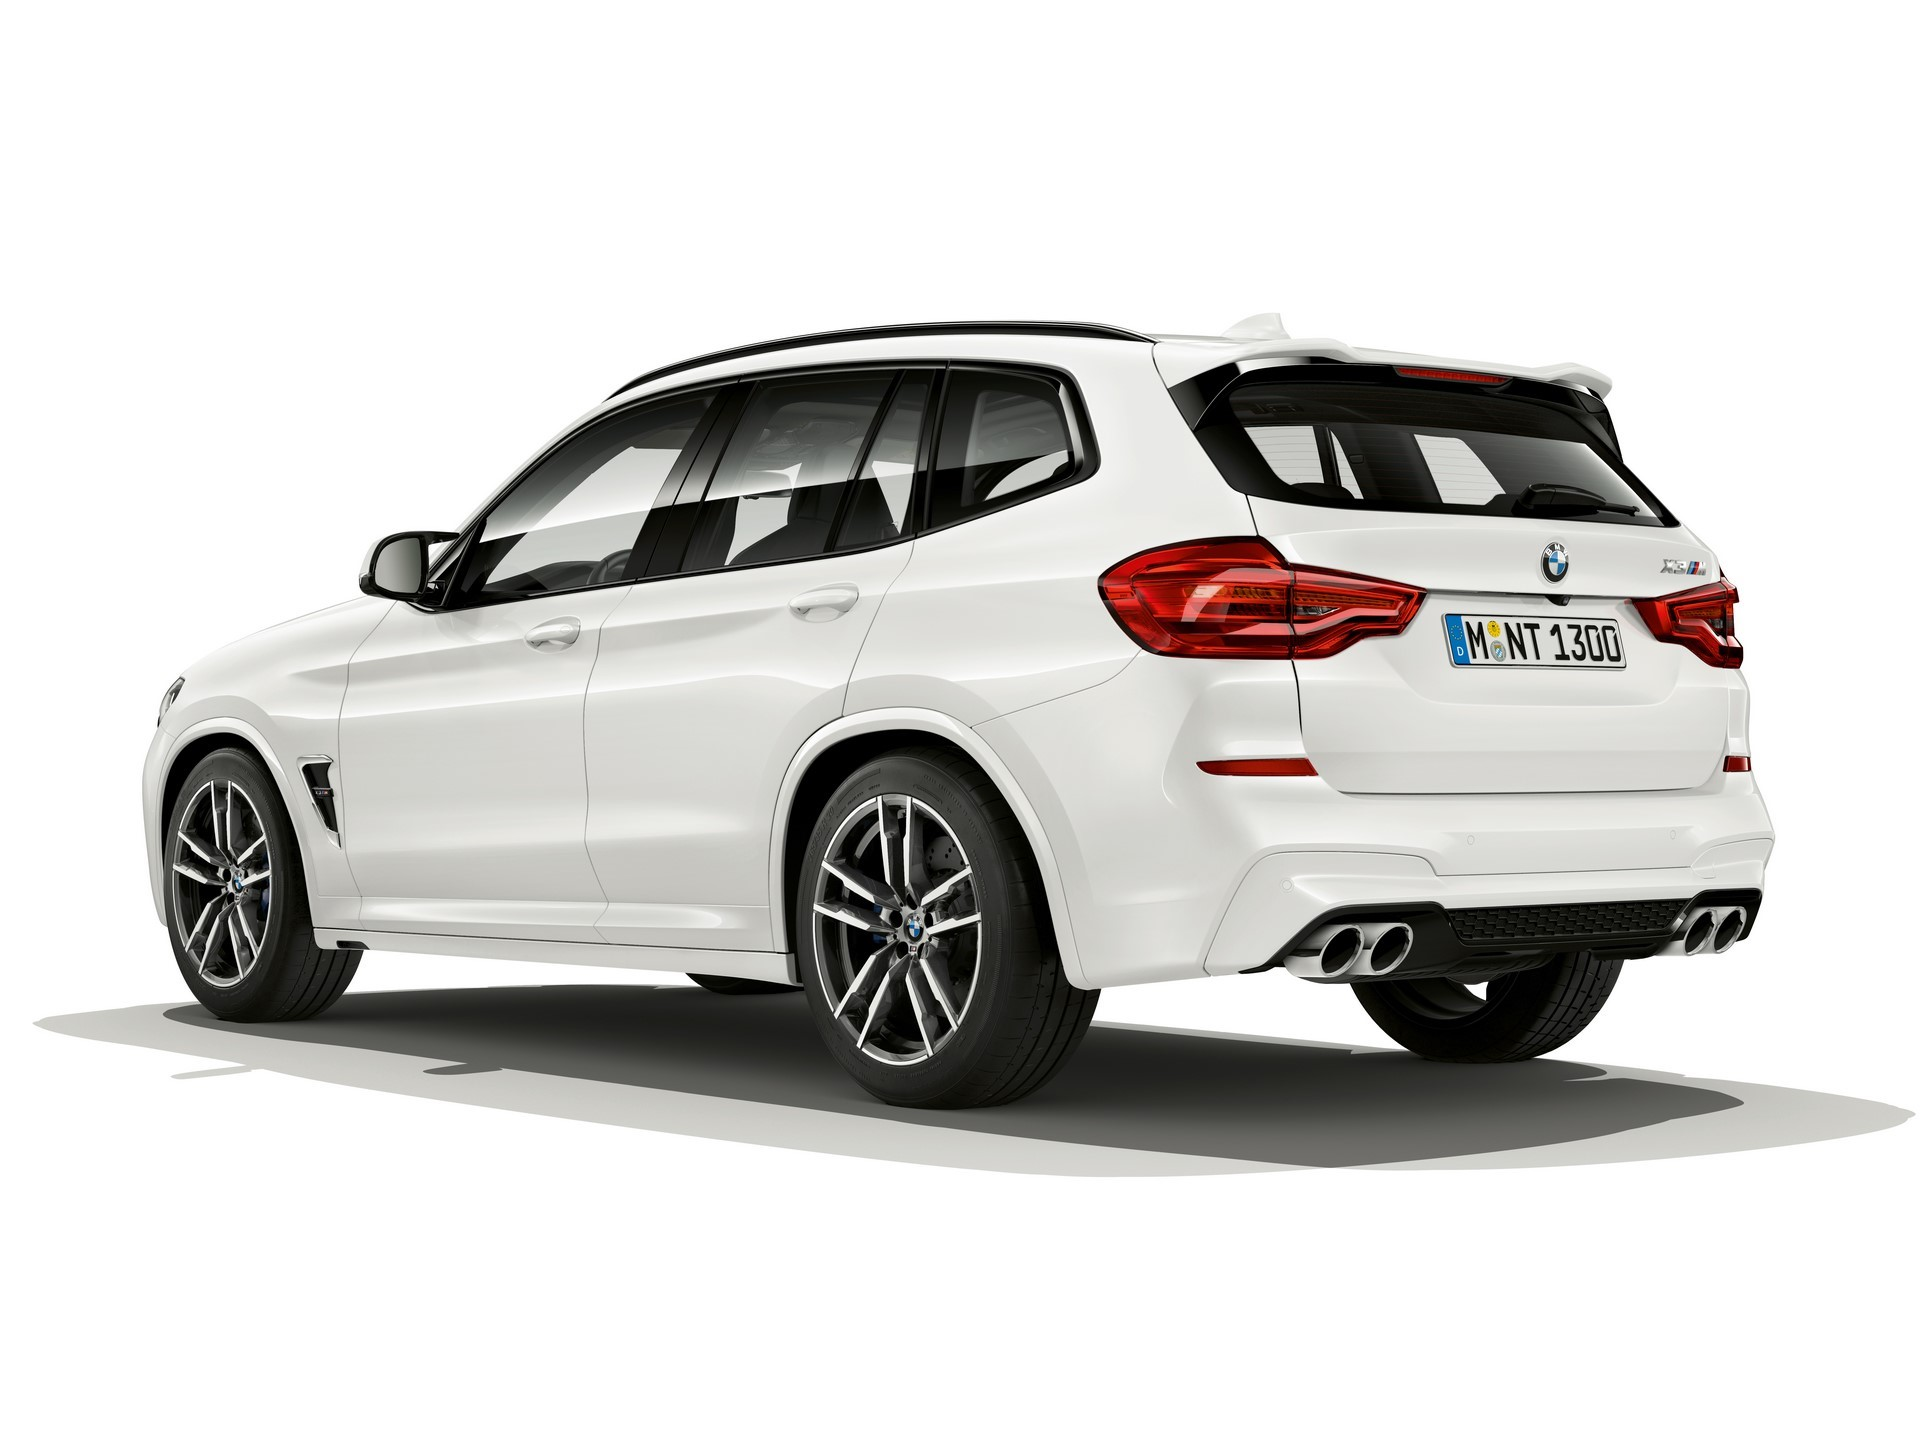 BMW X3 M and X4 M 2019 (166)